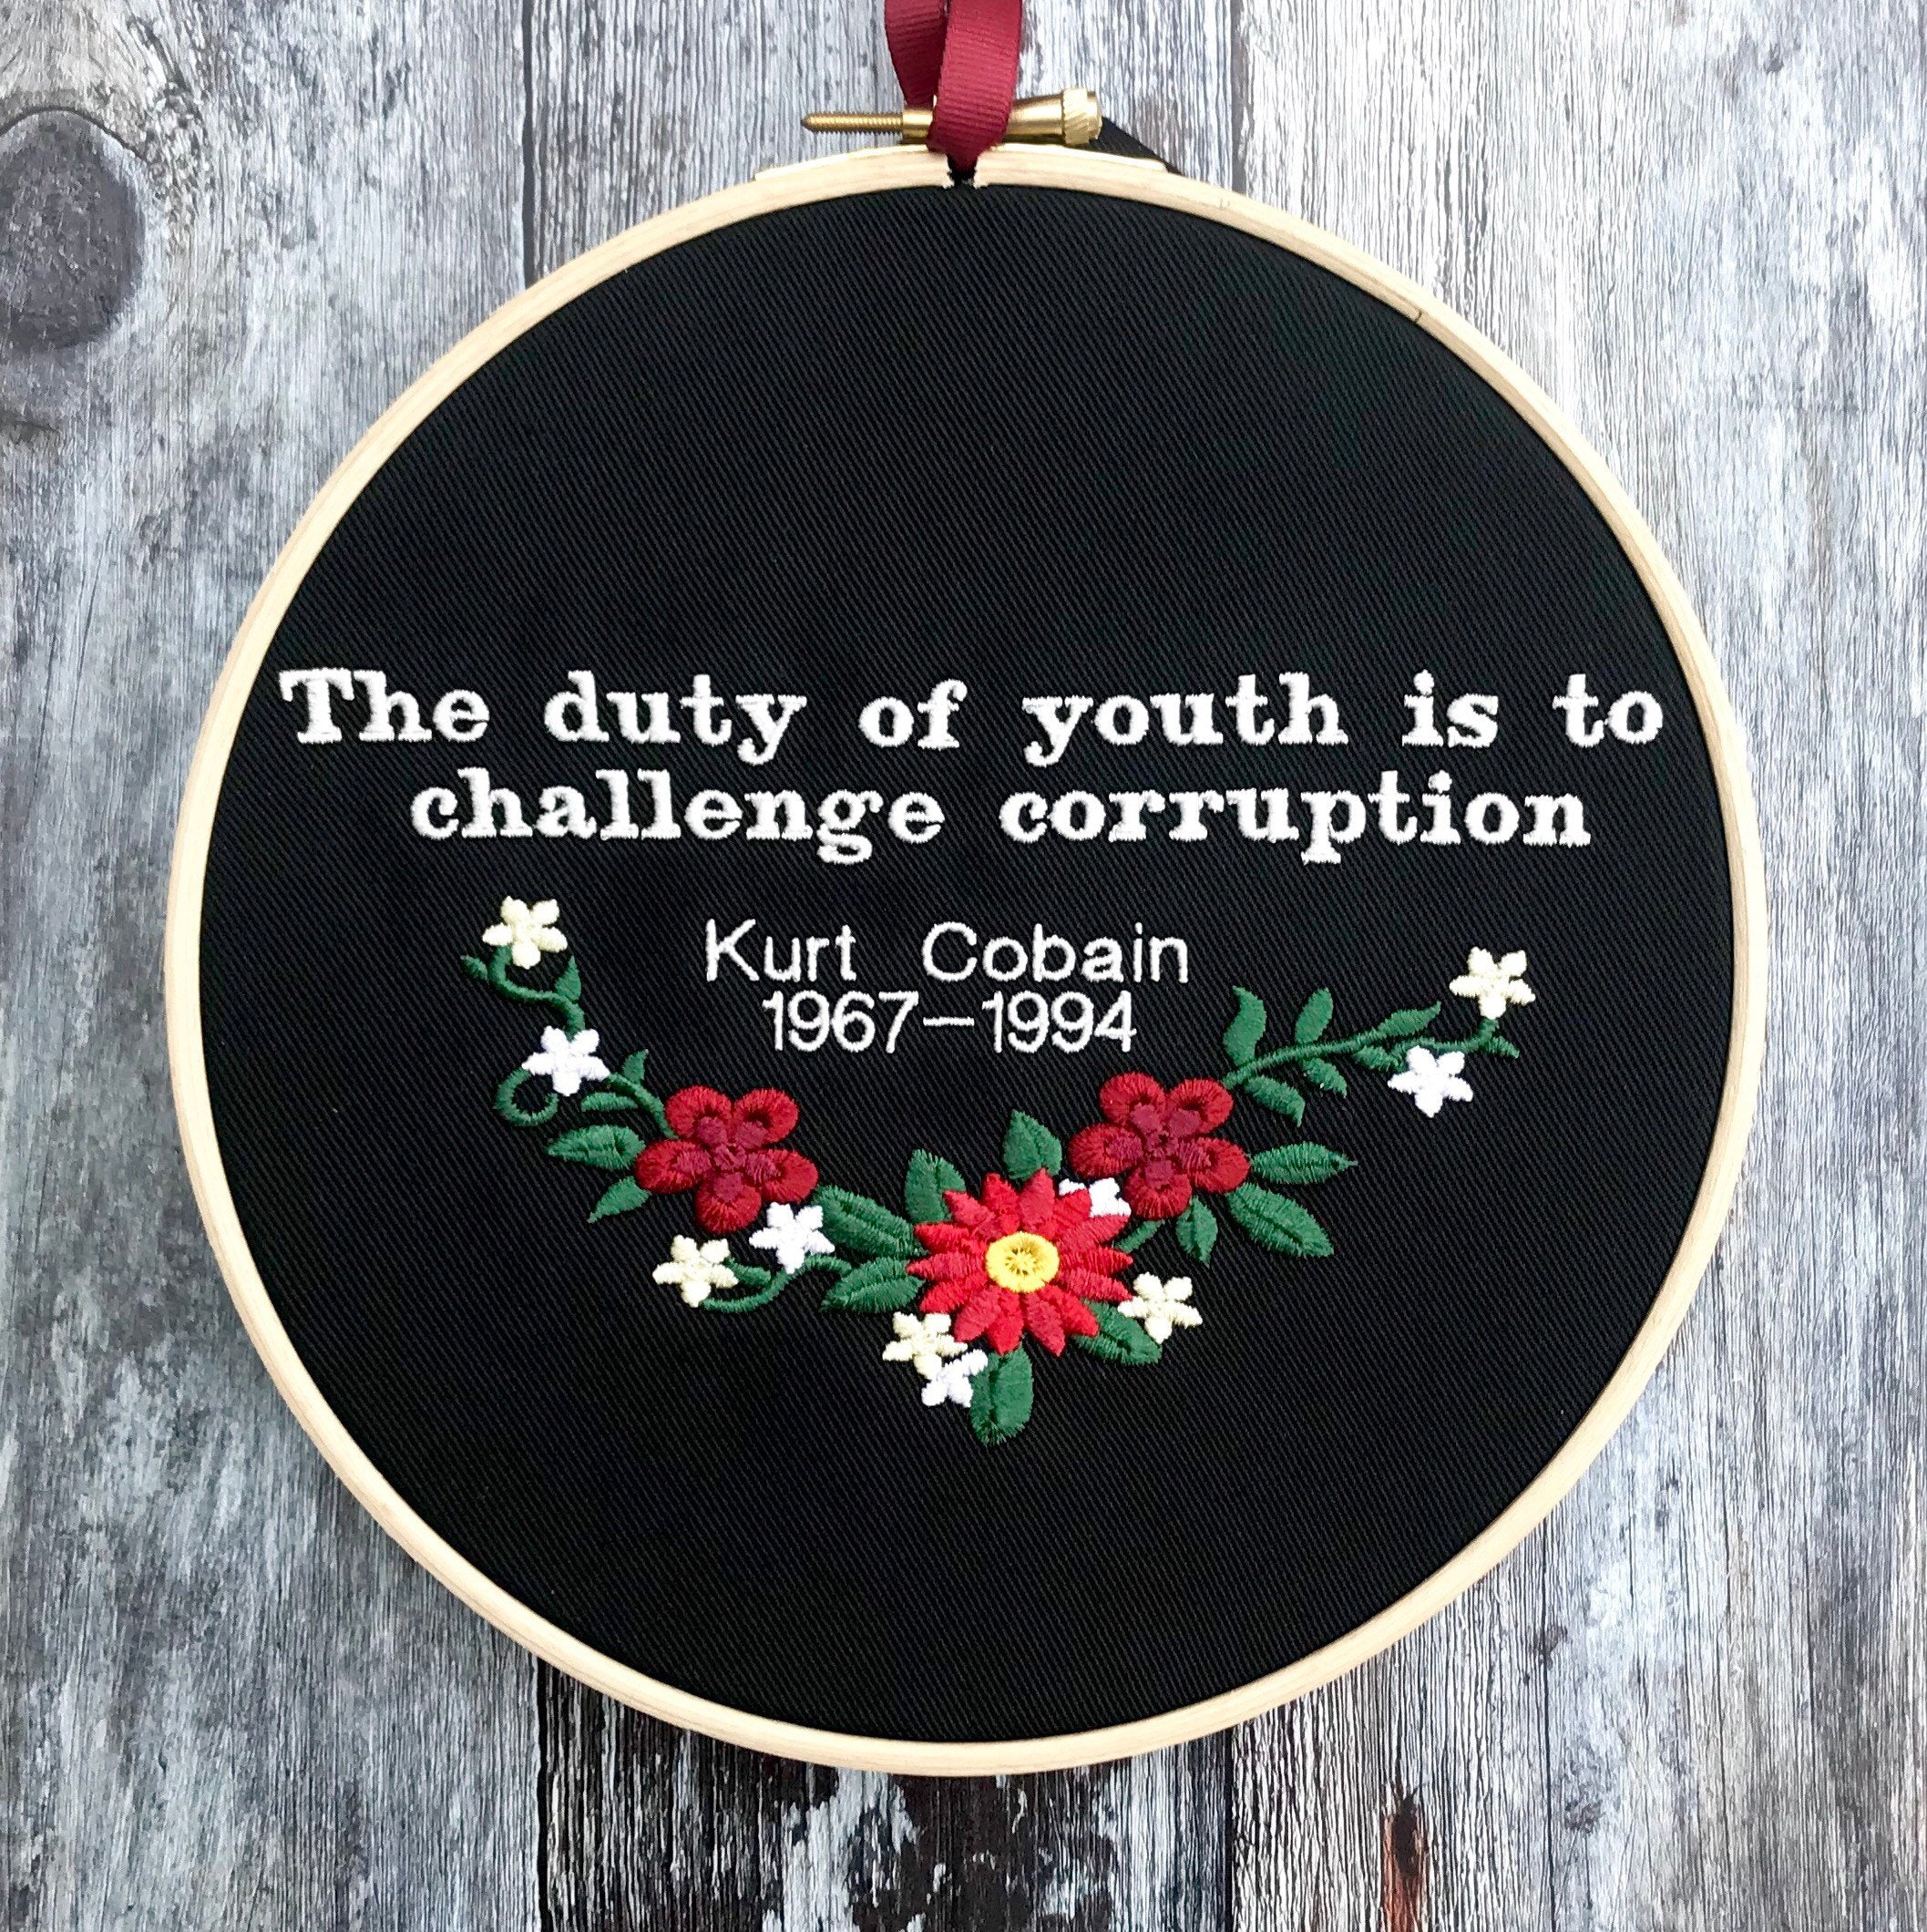 The duty of youth is to challenge corruption, Kurt Cobain quote, Embroidery hoop art